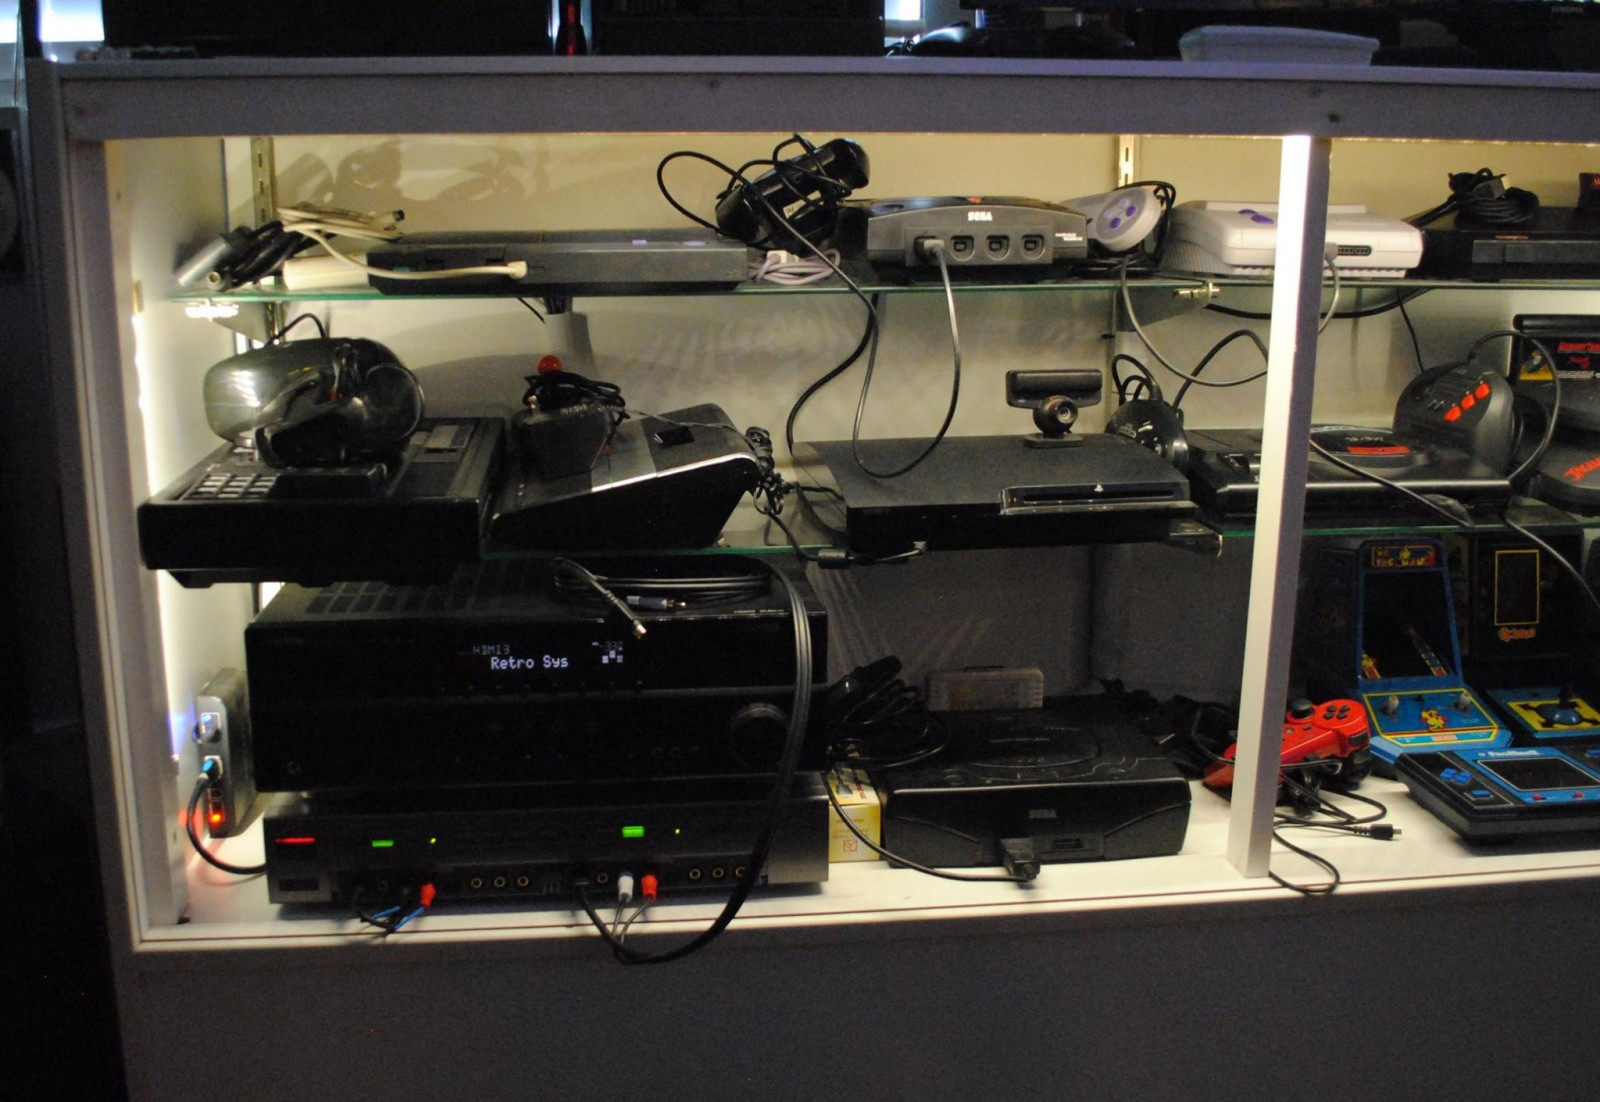 So many consoles....so little time...